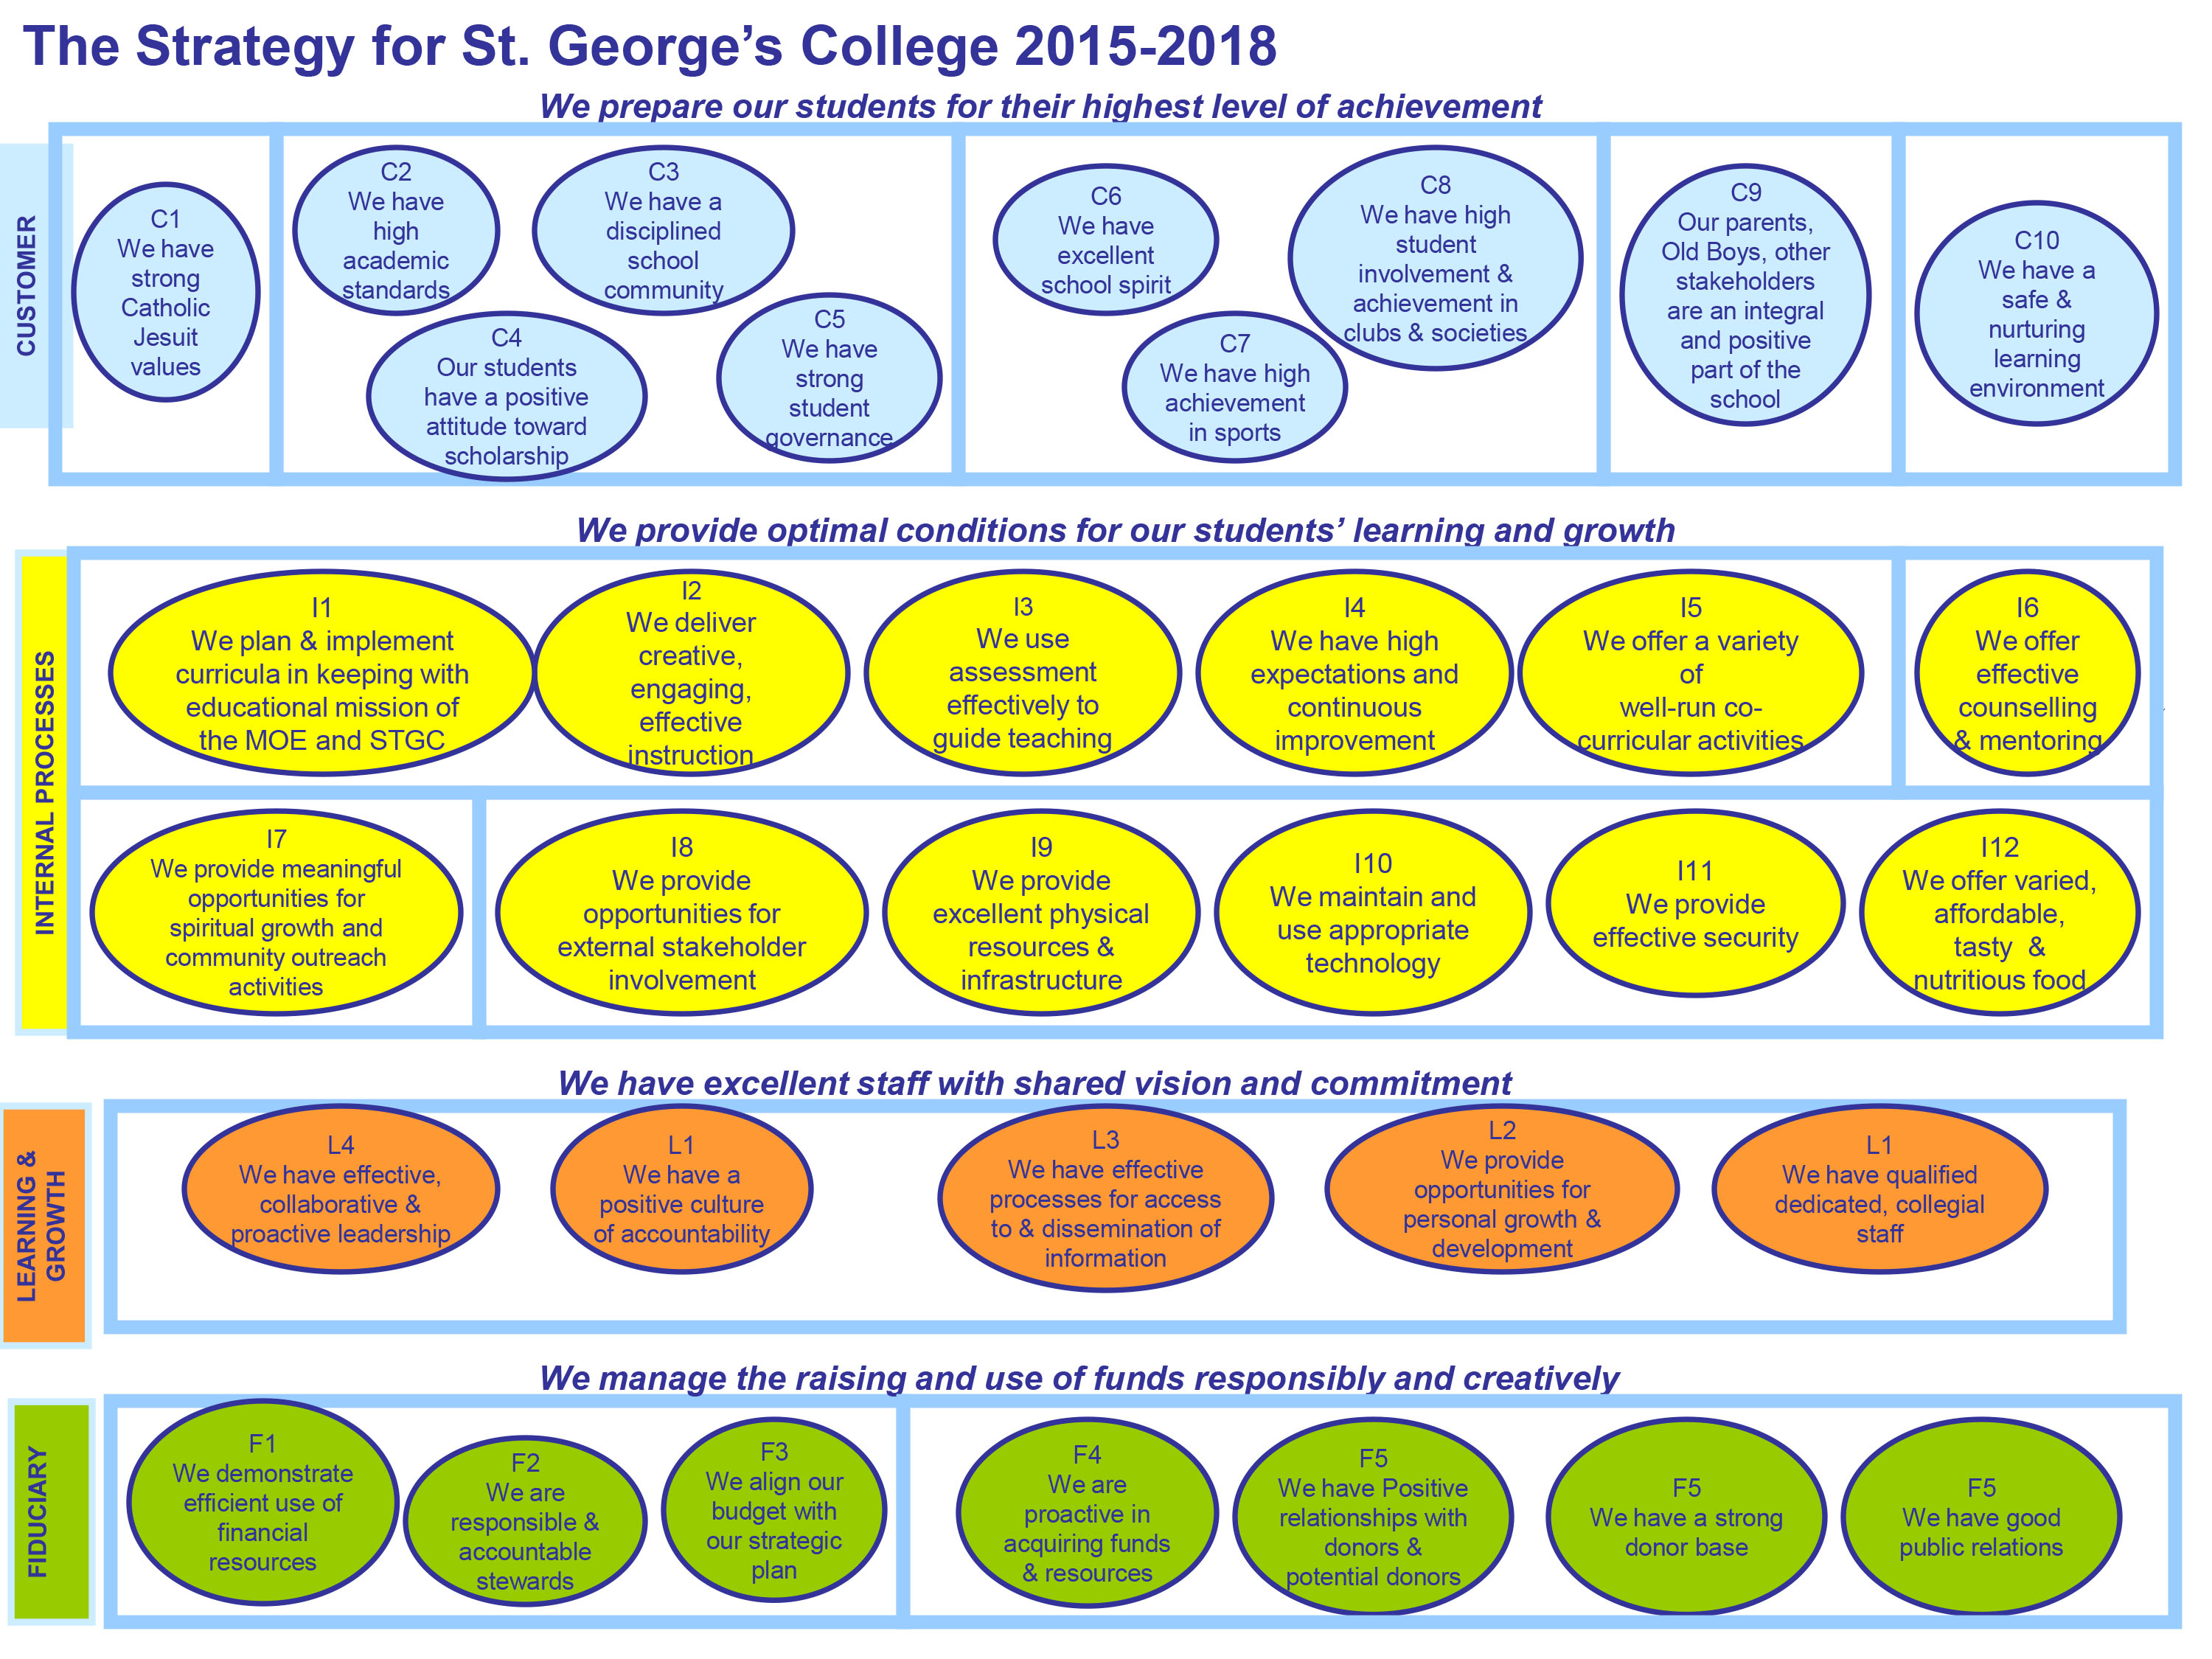 The Strategy for St. George's College 2015-2018